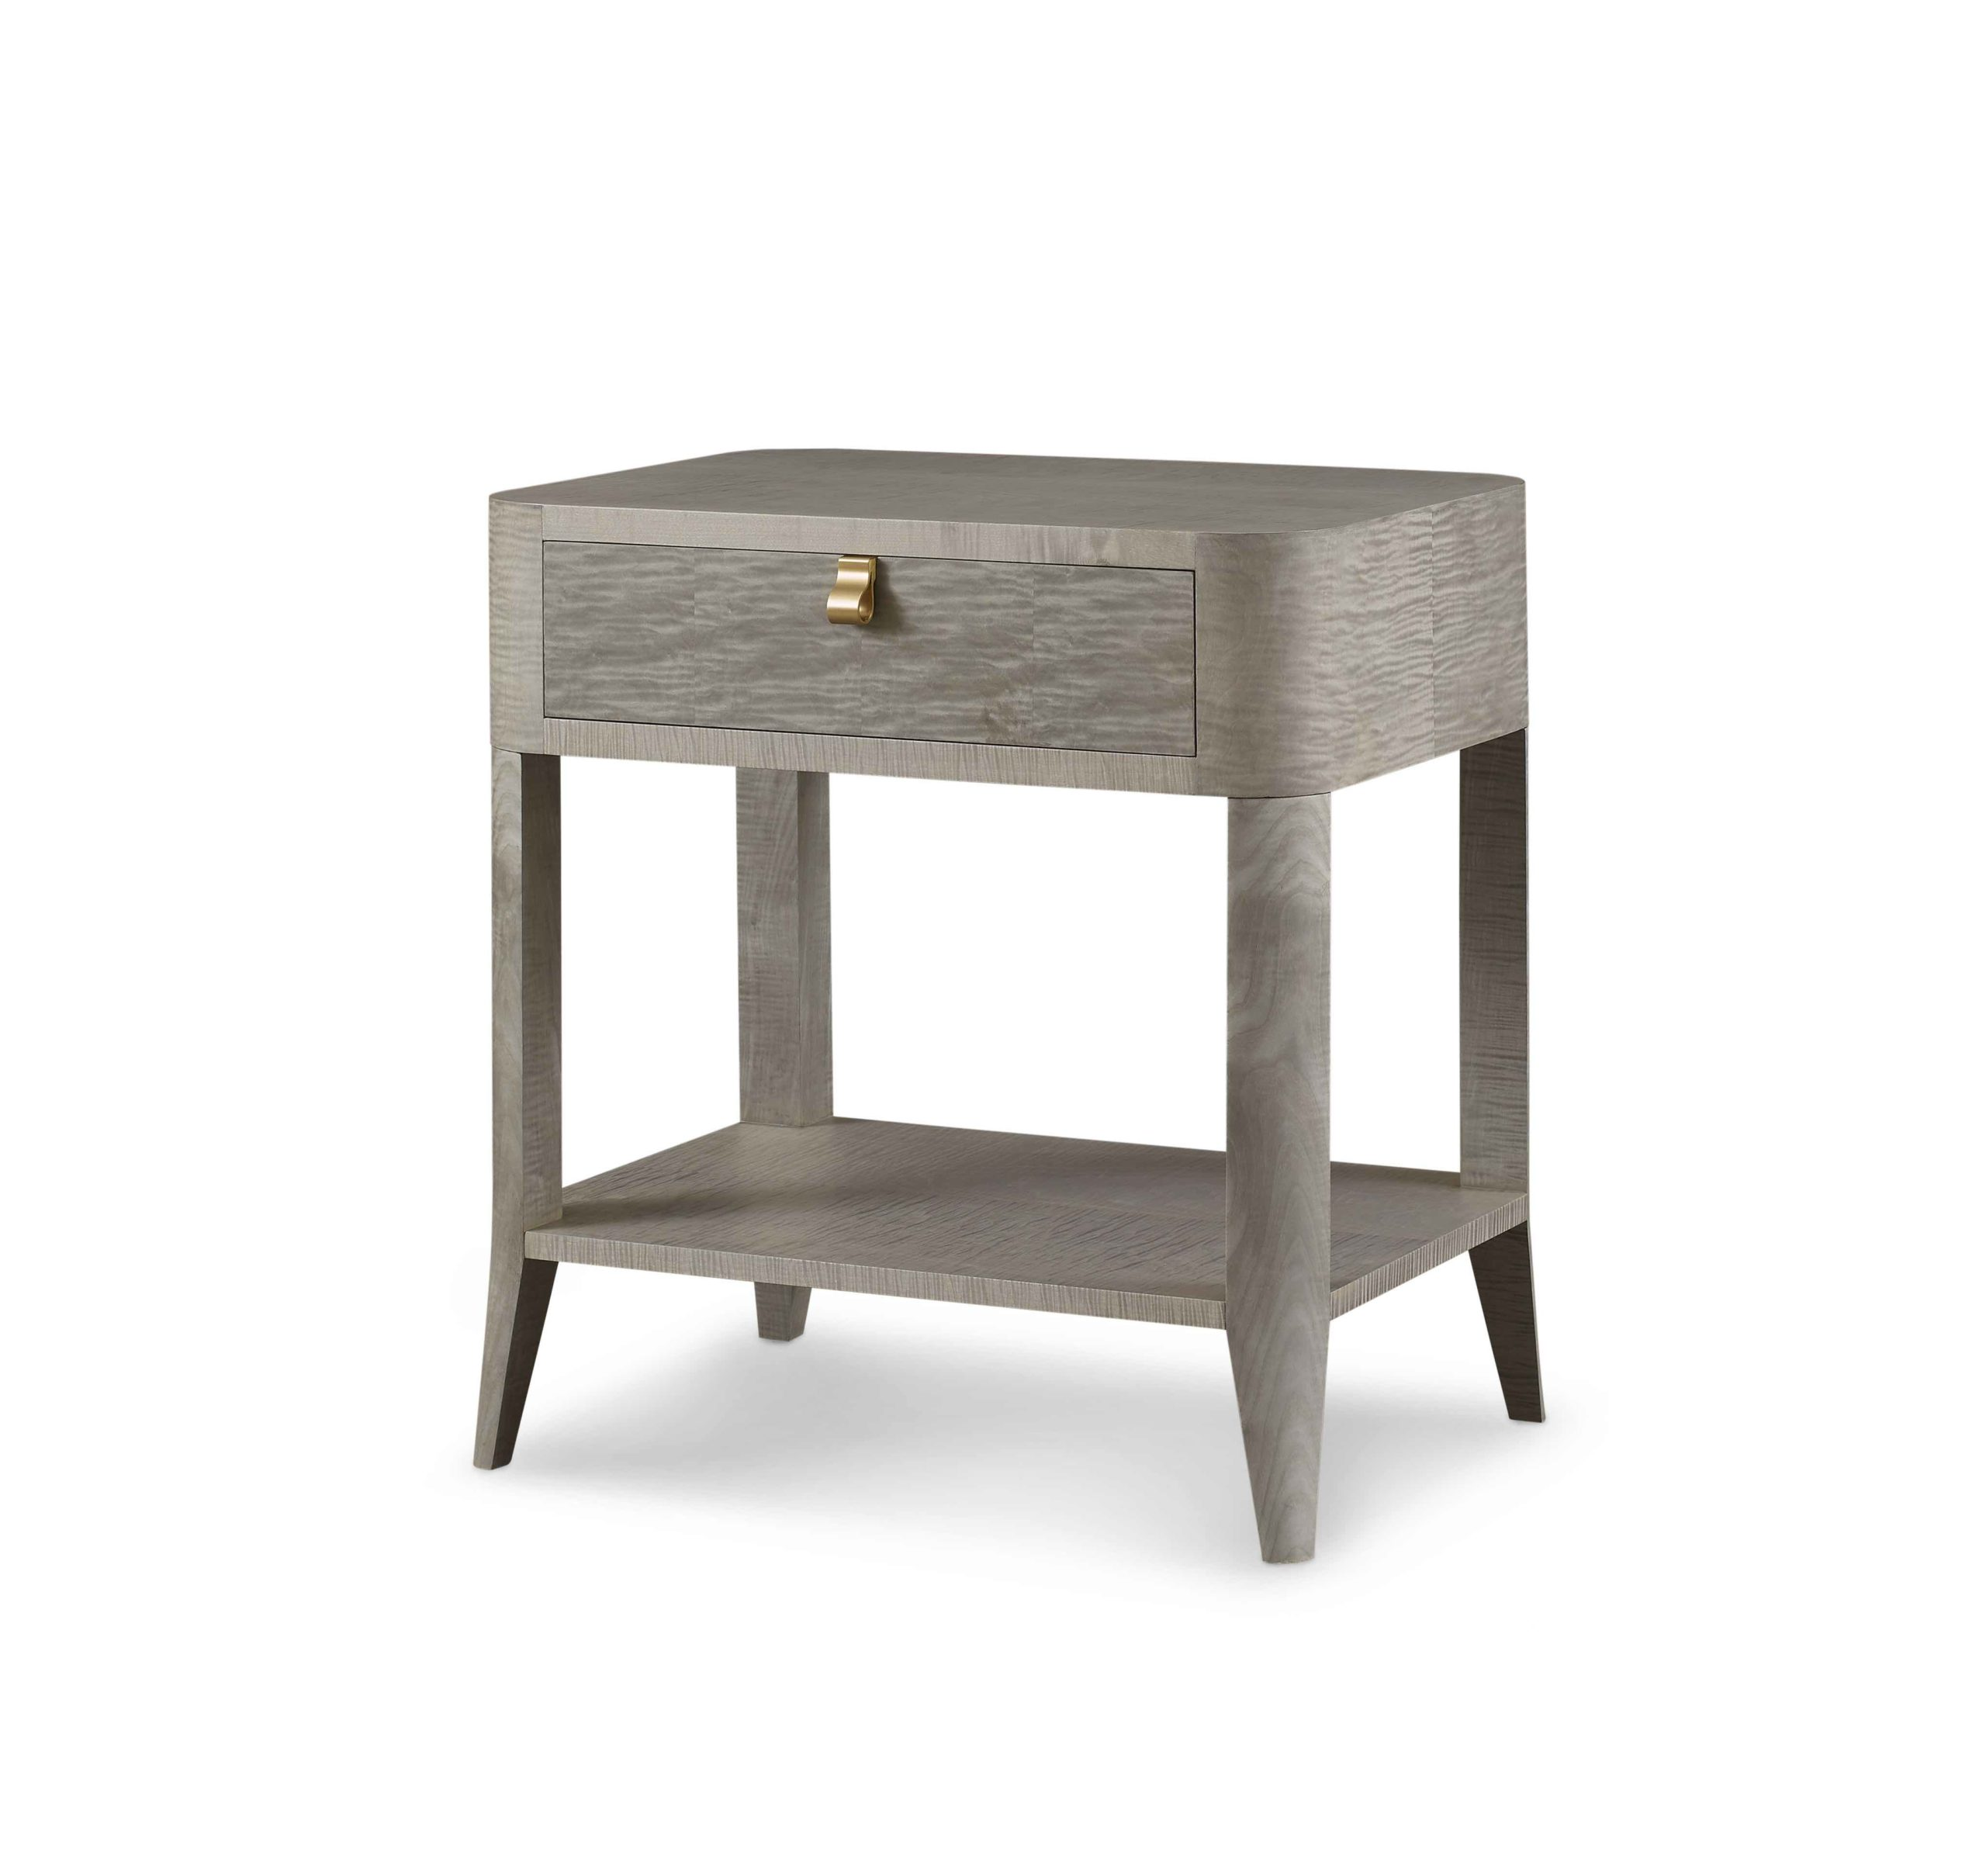 Baker_products_WNWN_rosaline_nightstand_BAA3009_FRONT_3QRT-scaled-2